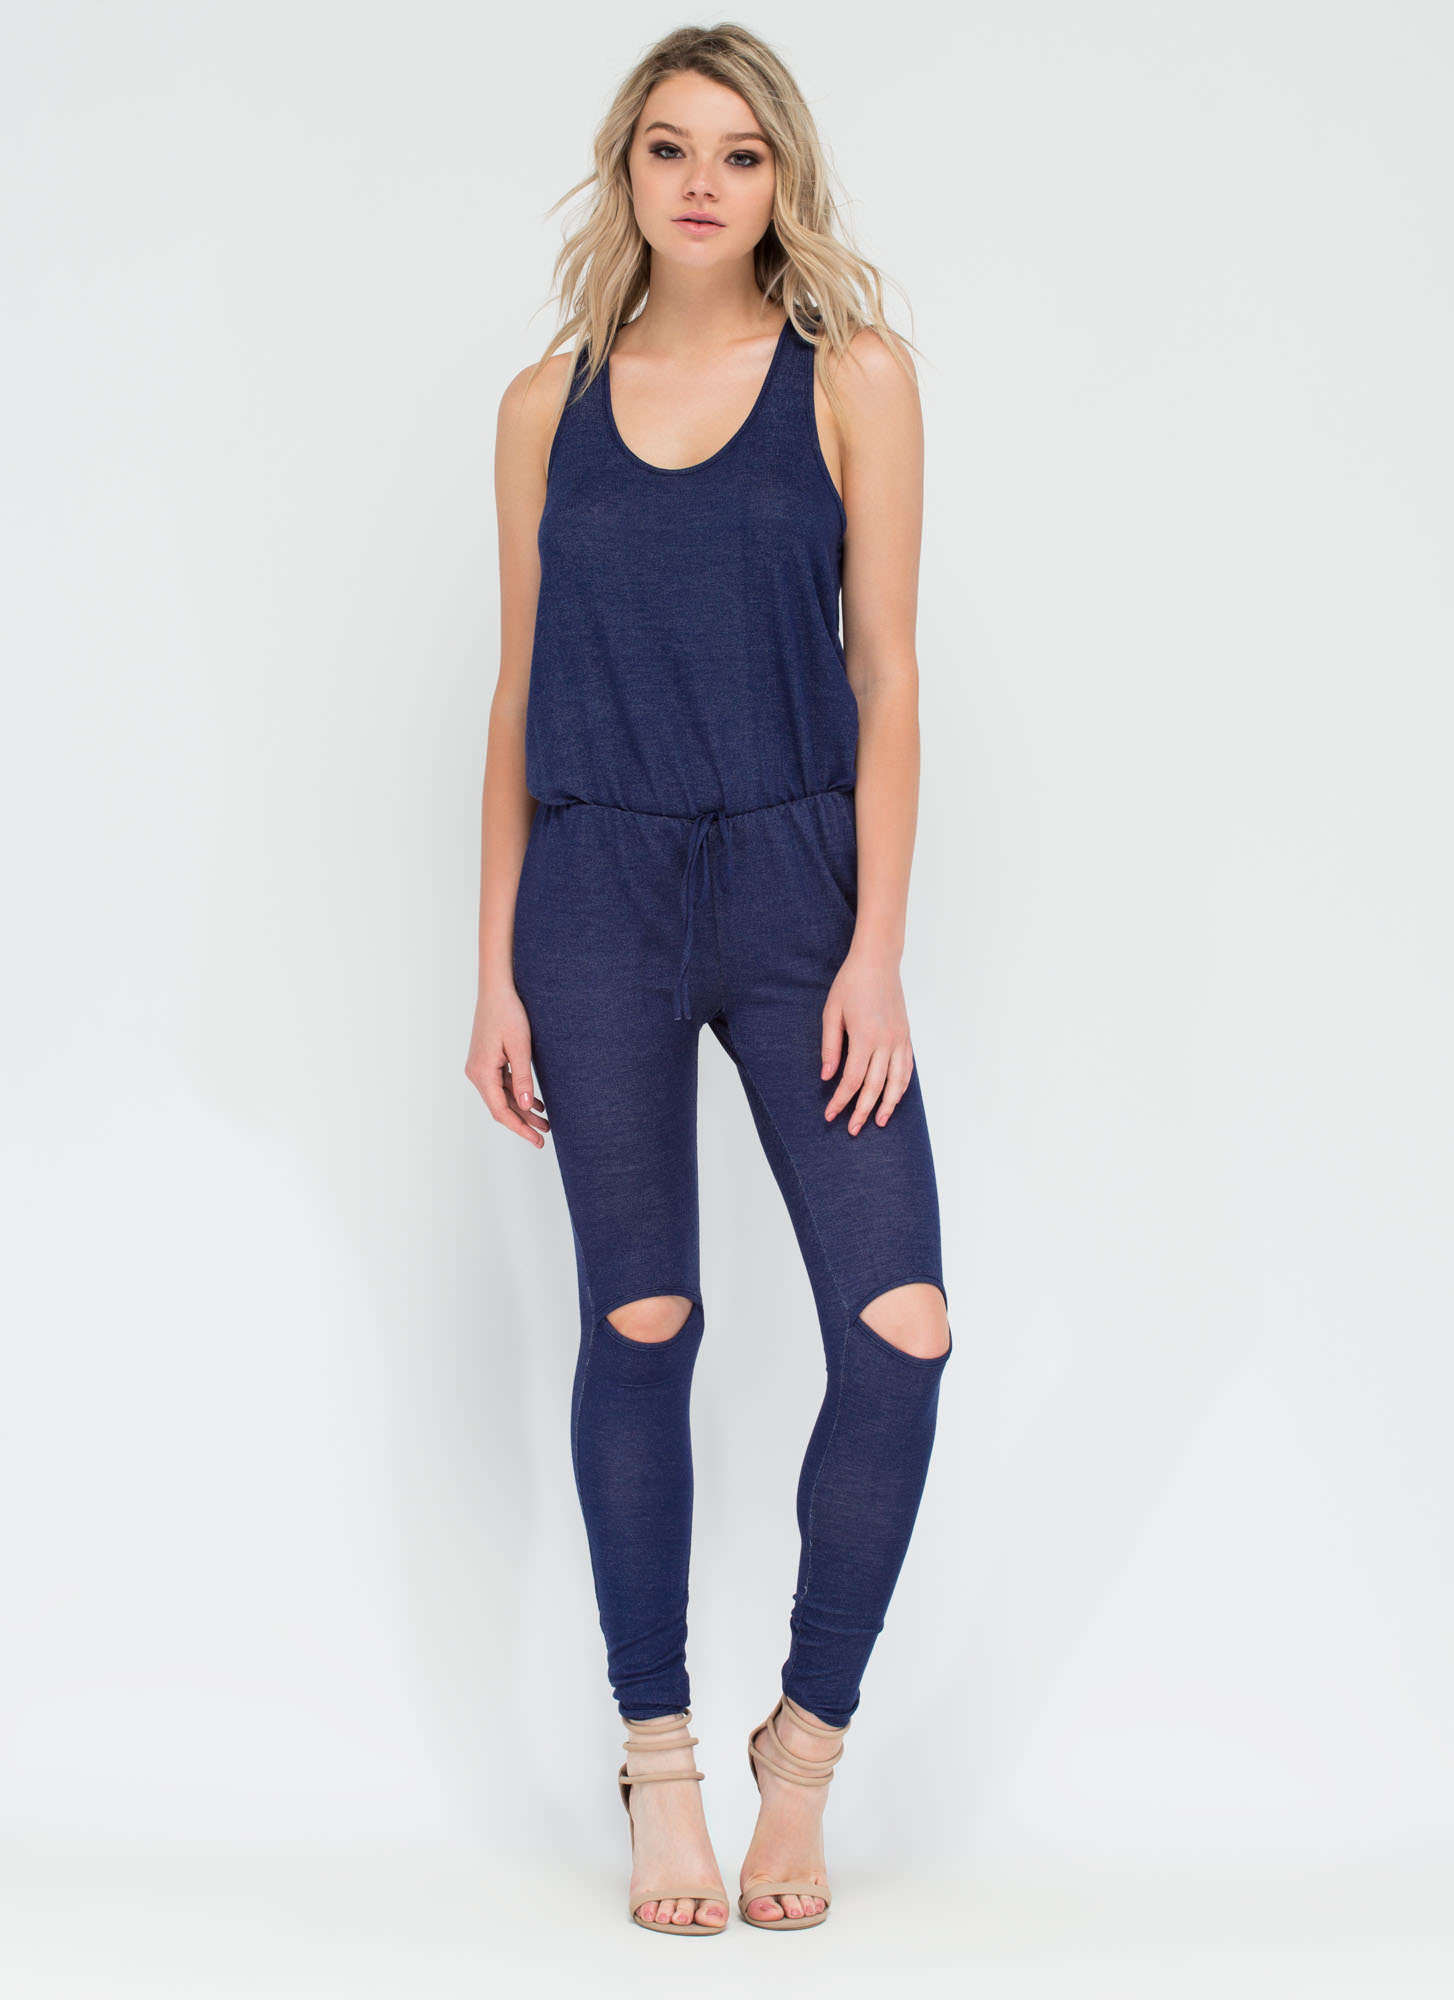 Slit Girl Racerback Jumpsuit NAVY